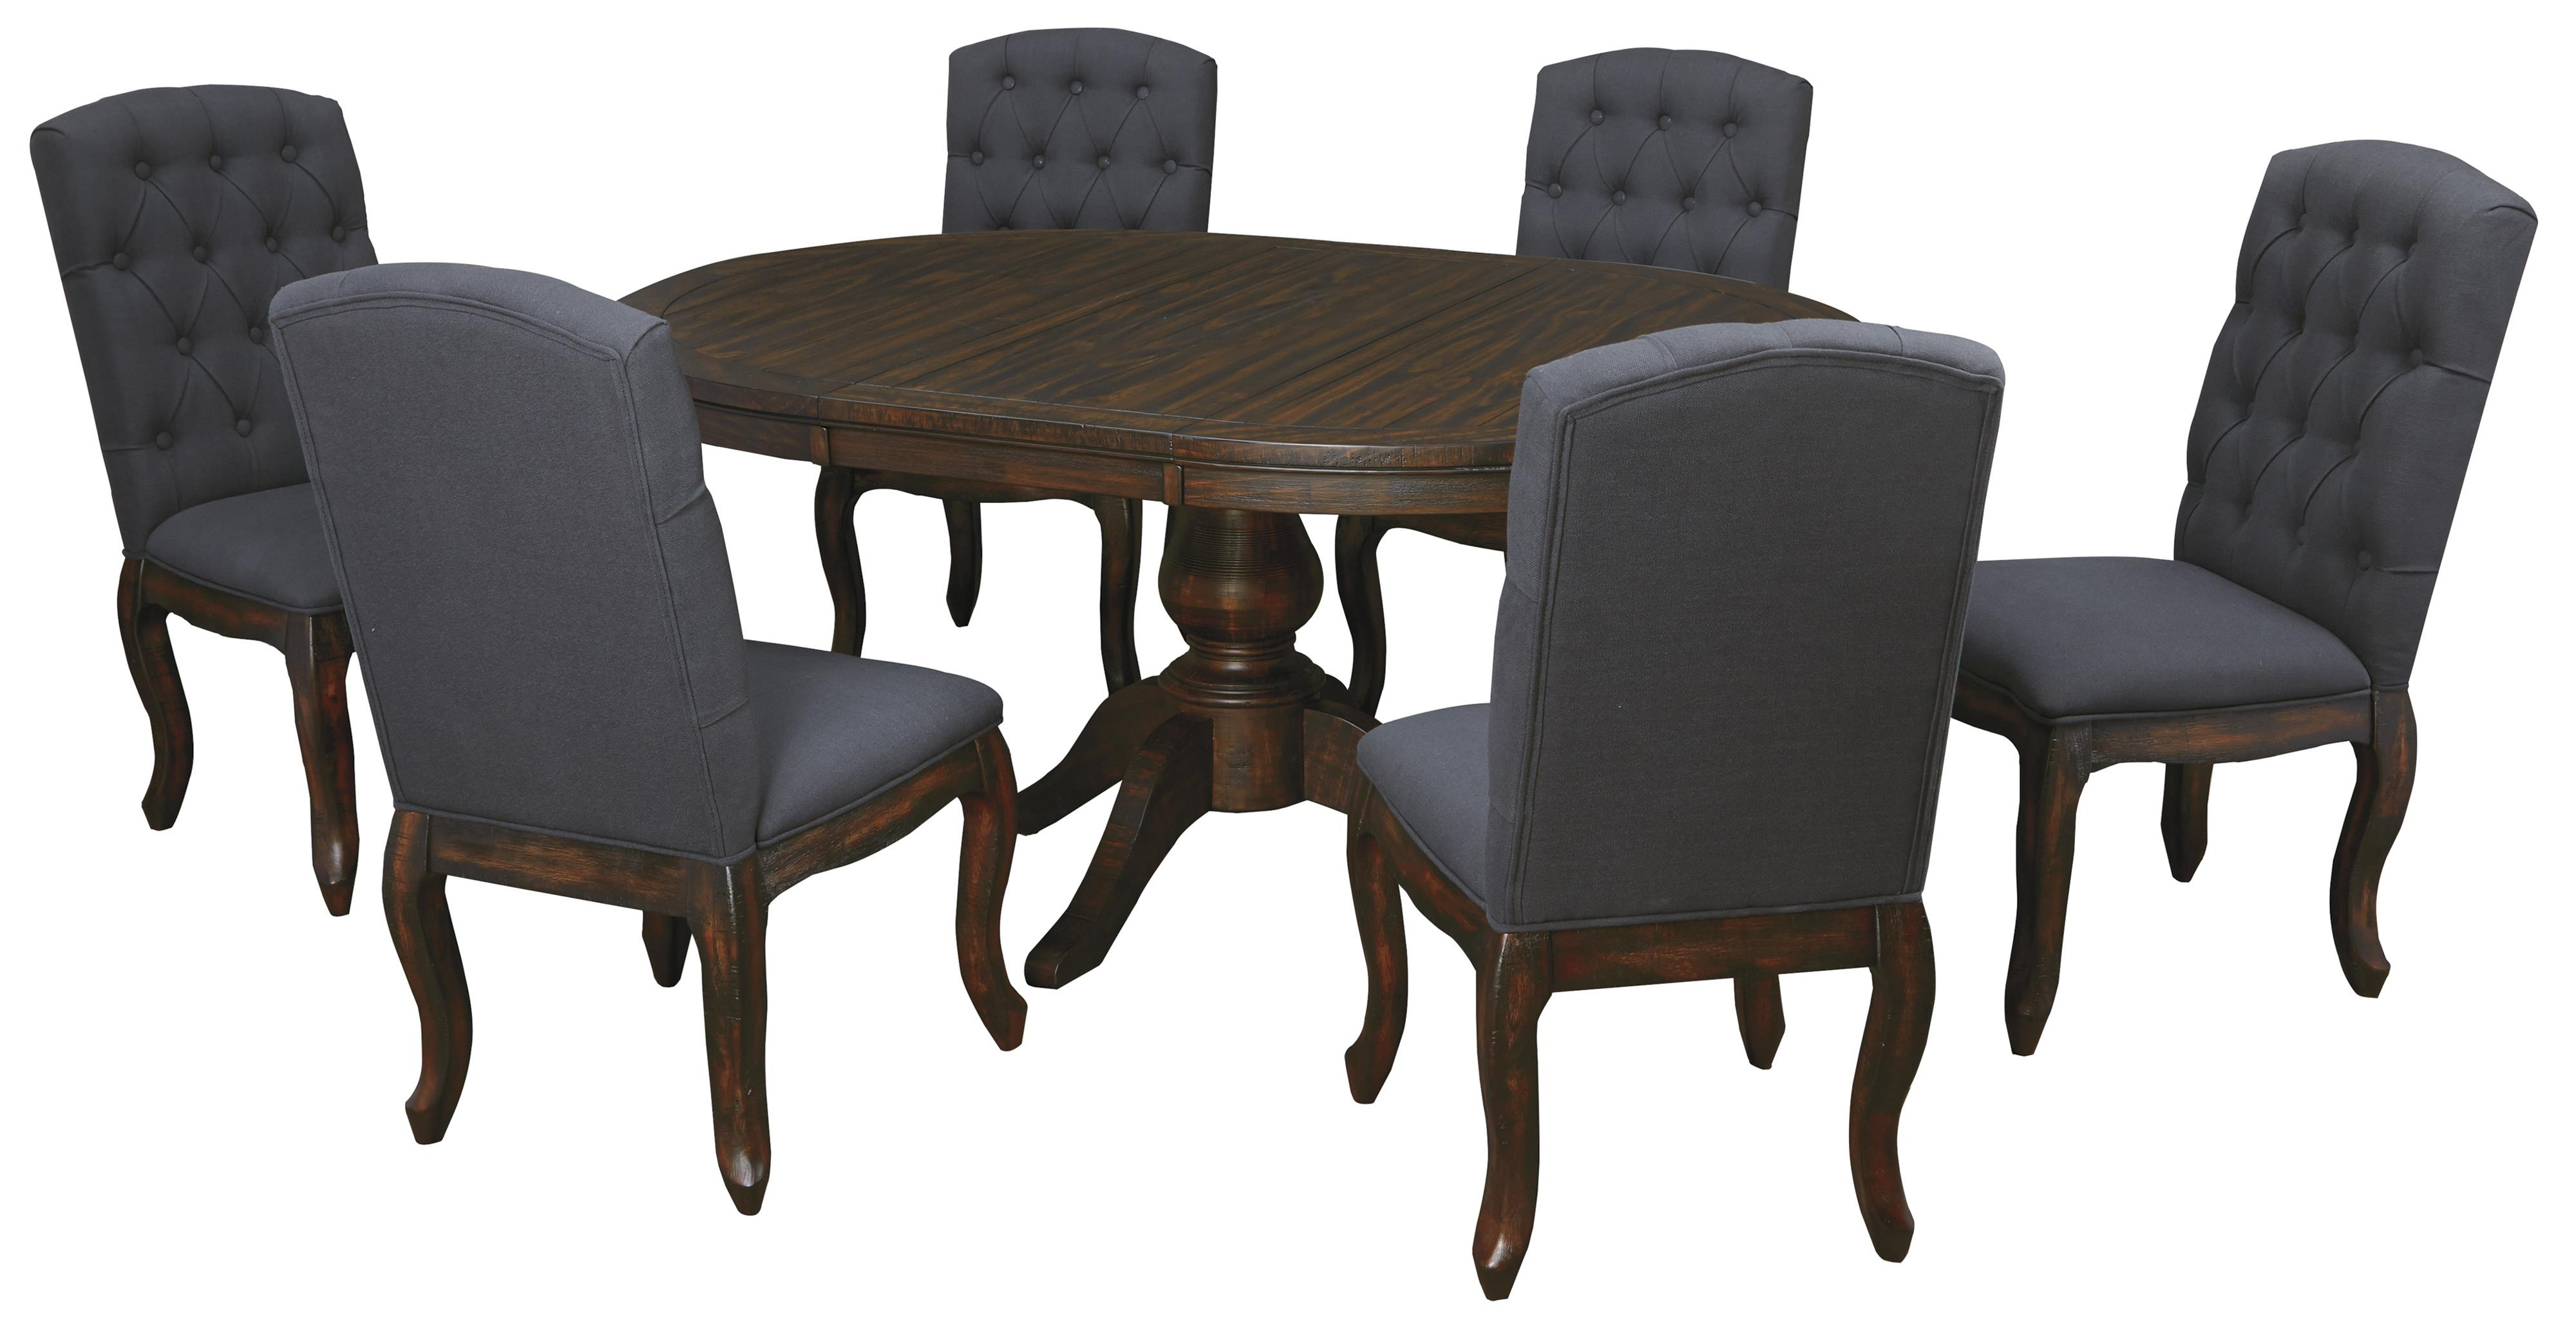 7 Piece Oval Dining Table Set With Upholstered Side Chairs Inside Newest Craftsman 9 Piece Extension Dining Sets With Uph Side Chairs (View 20 of 25)